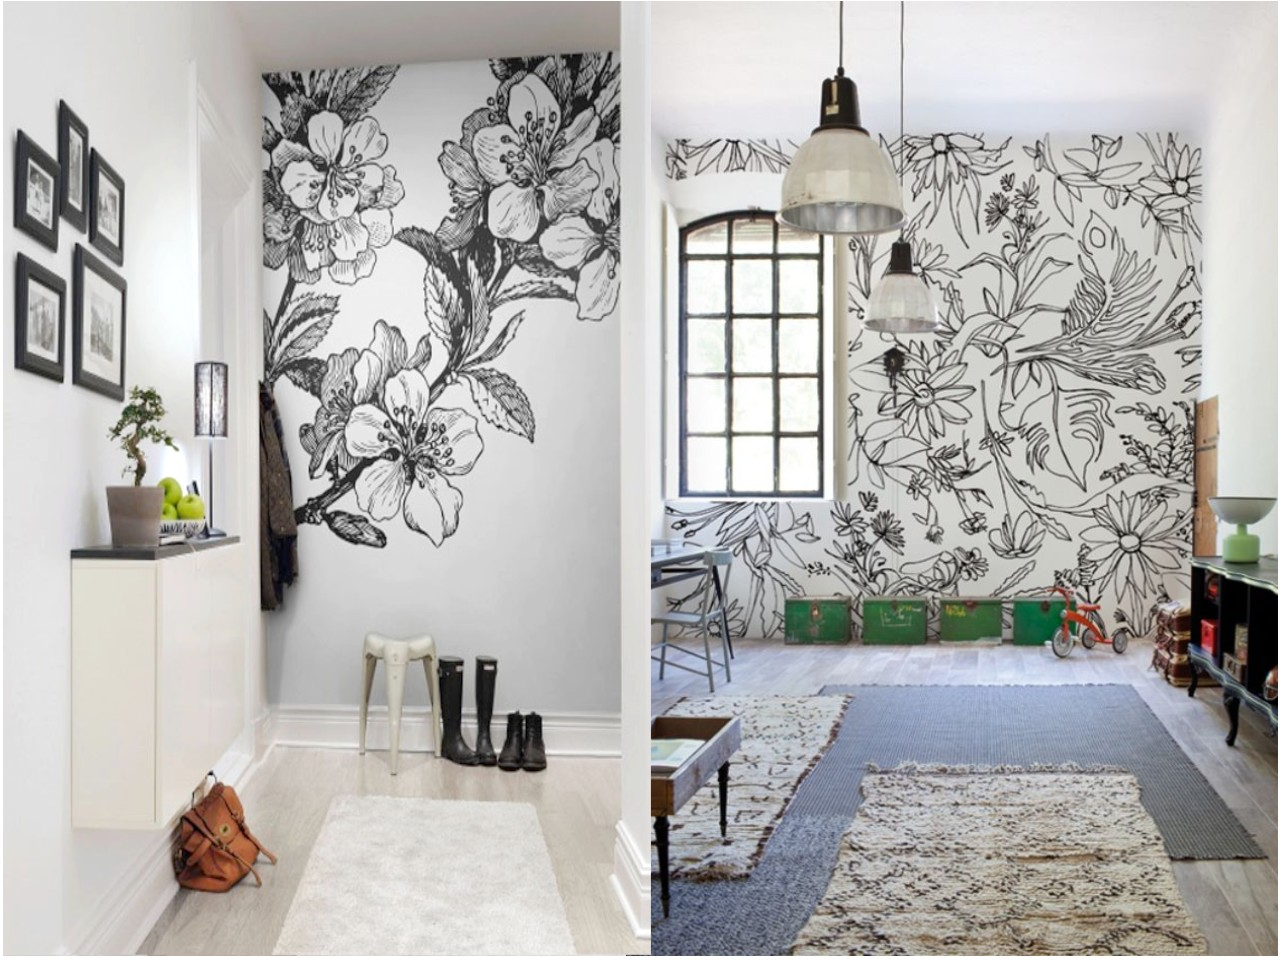 Dale color a tus paredes con vinilos decorativos de flores xl - Decoracion vinilo pared ...